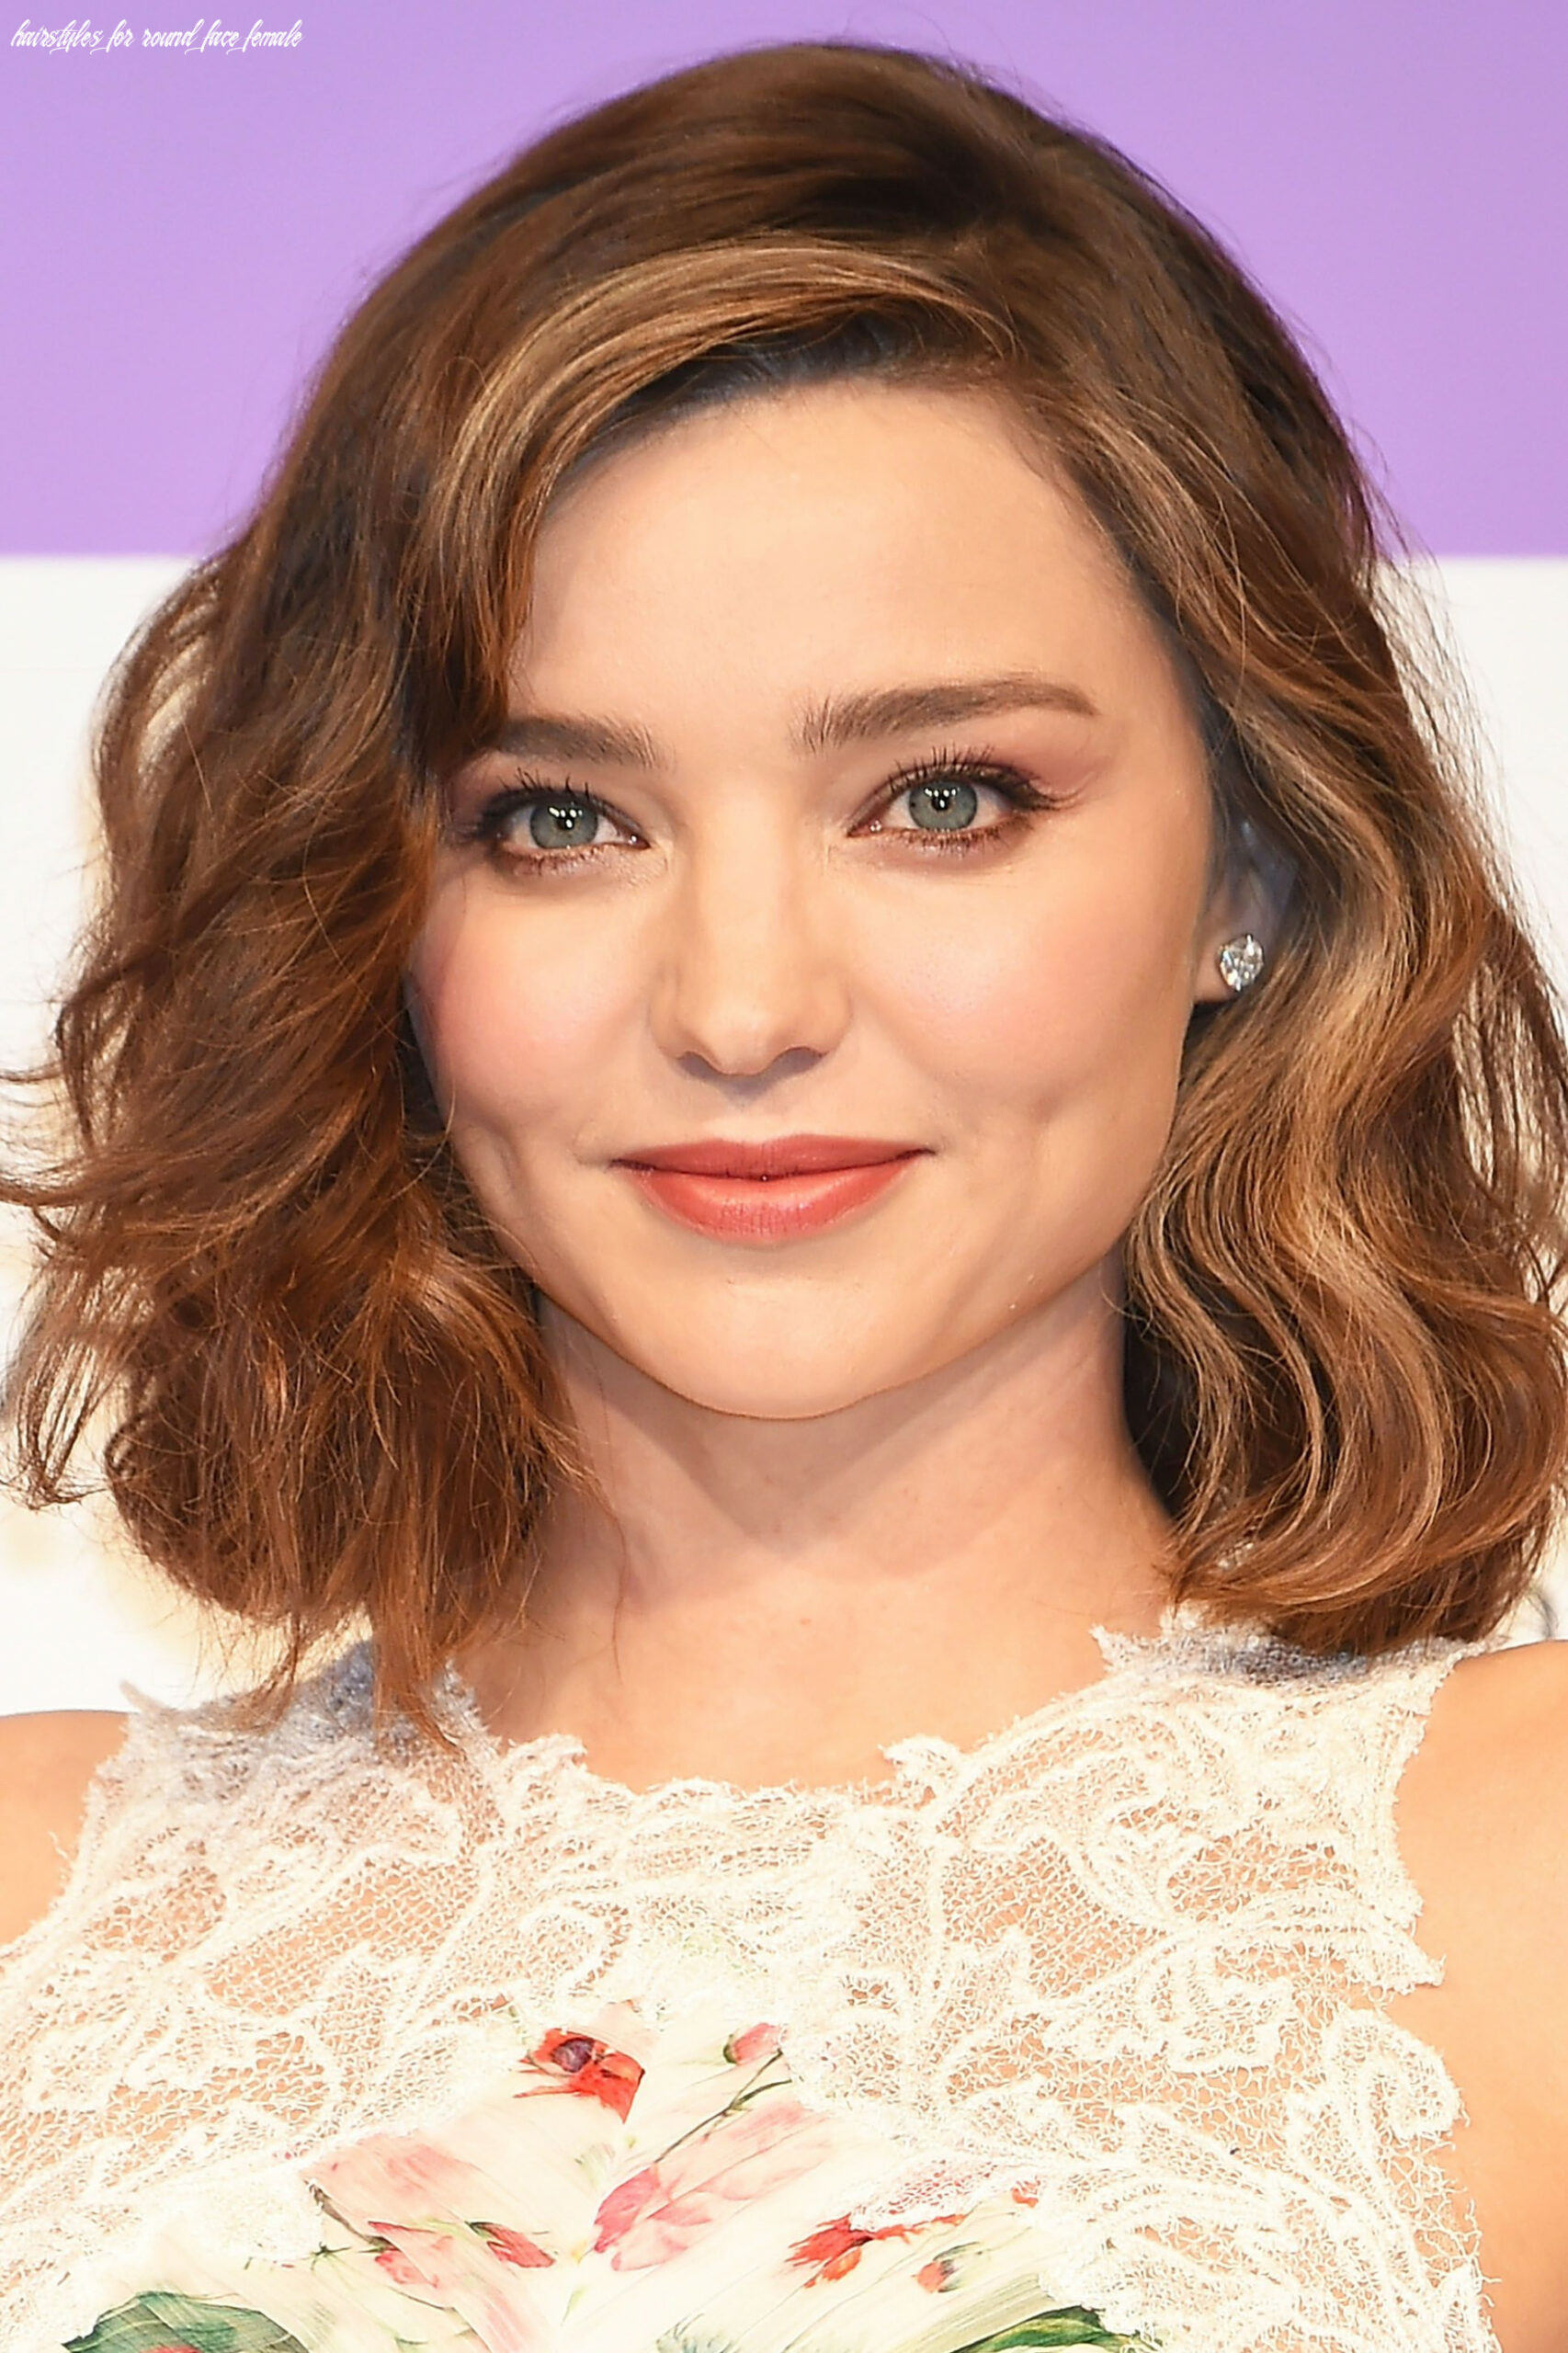 8 best hairstyles for round faces in 8 easy haircut ideas